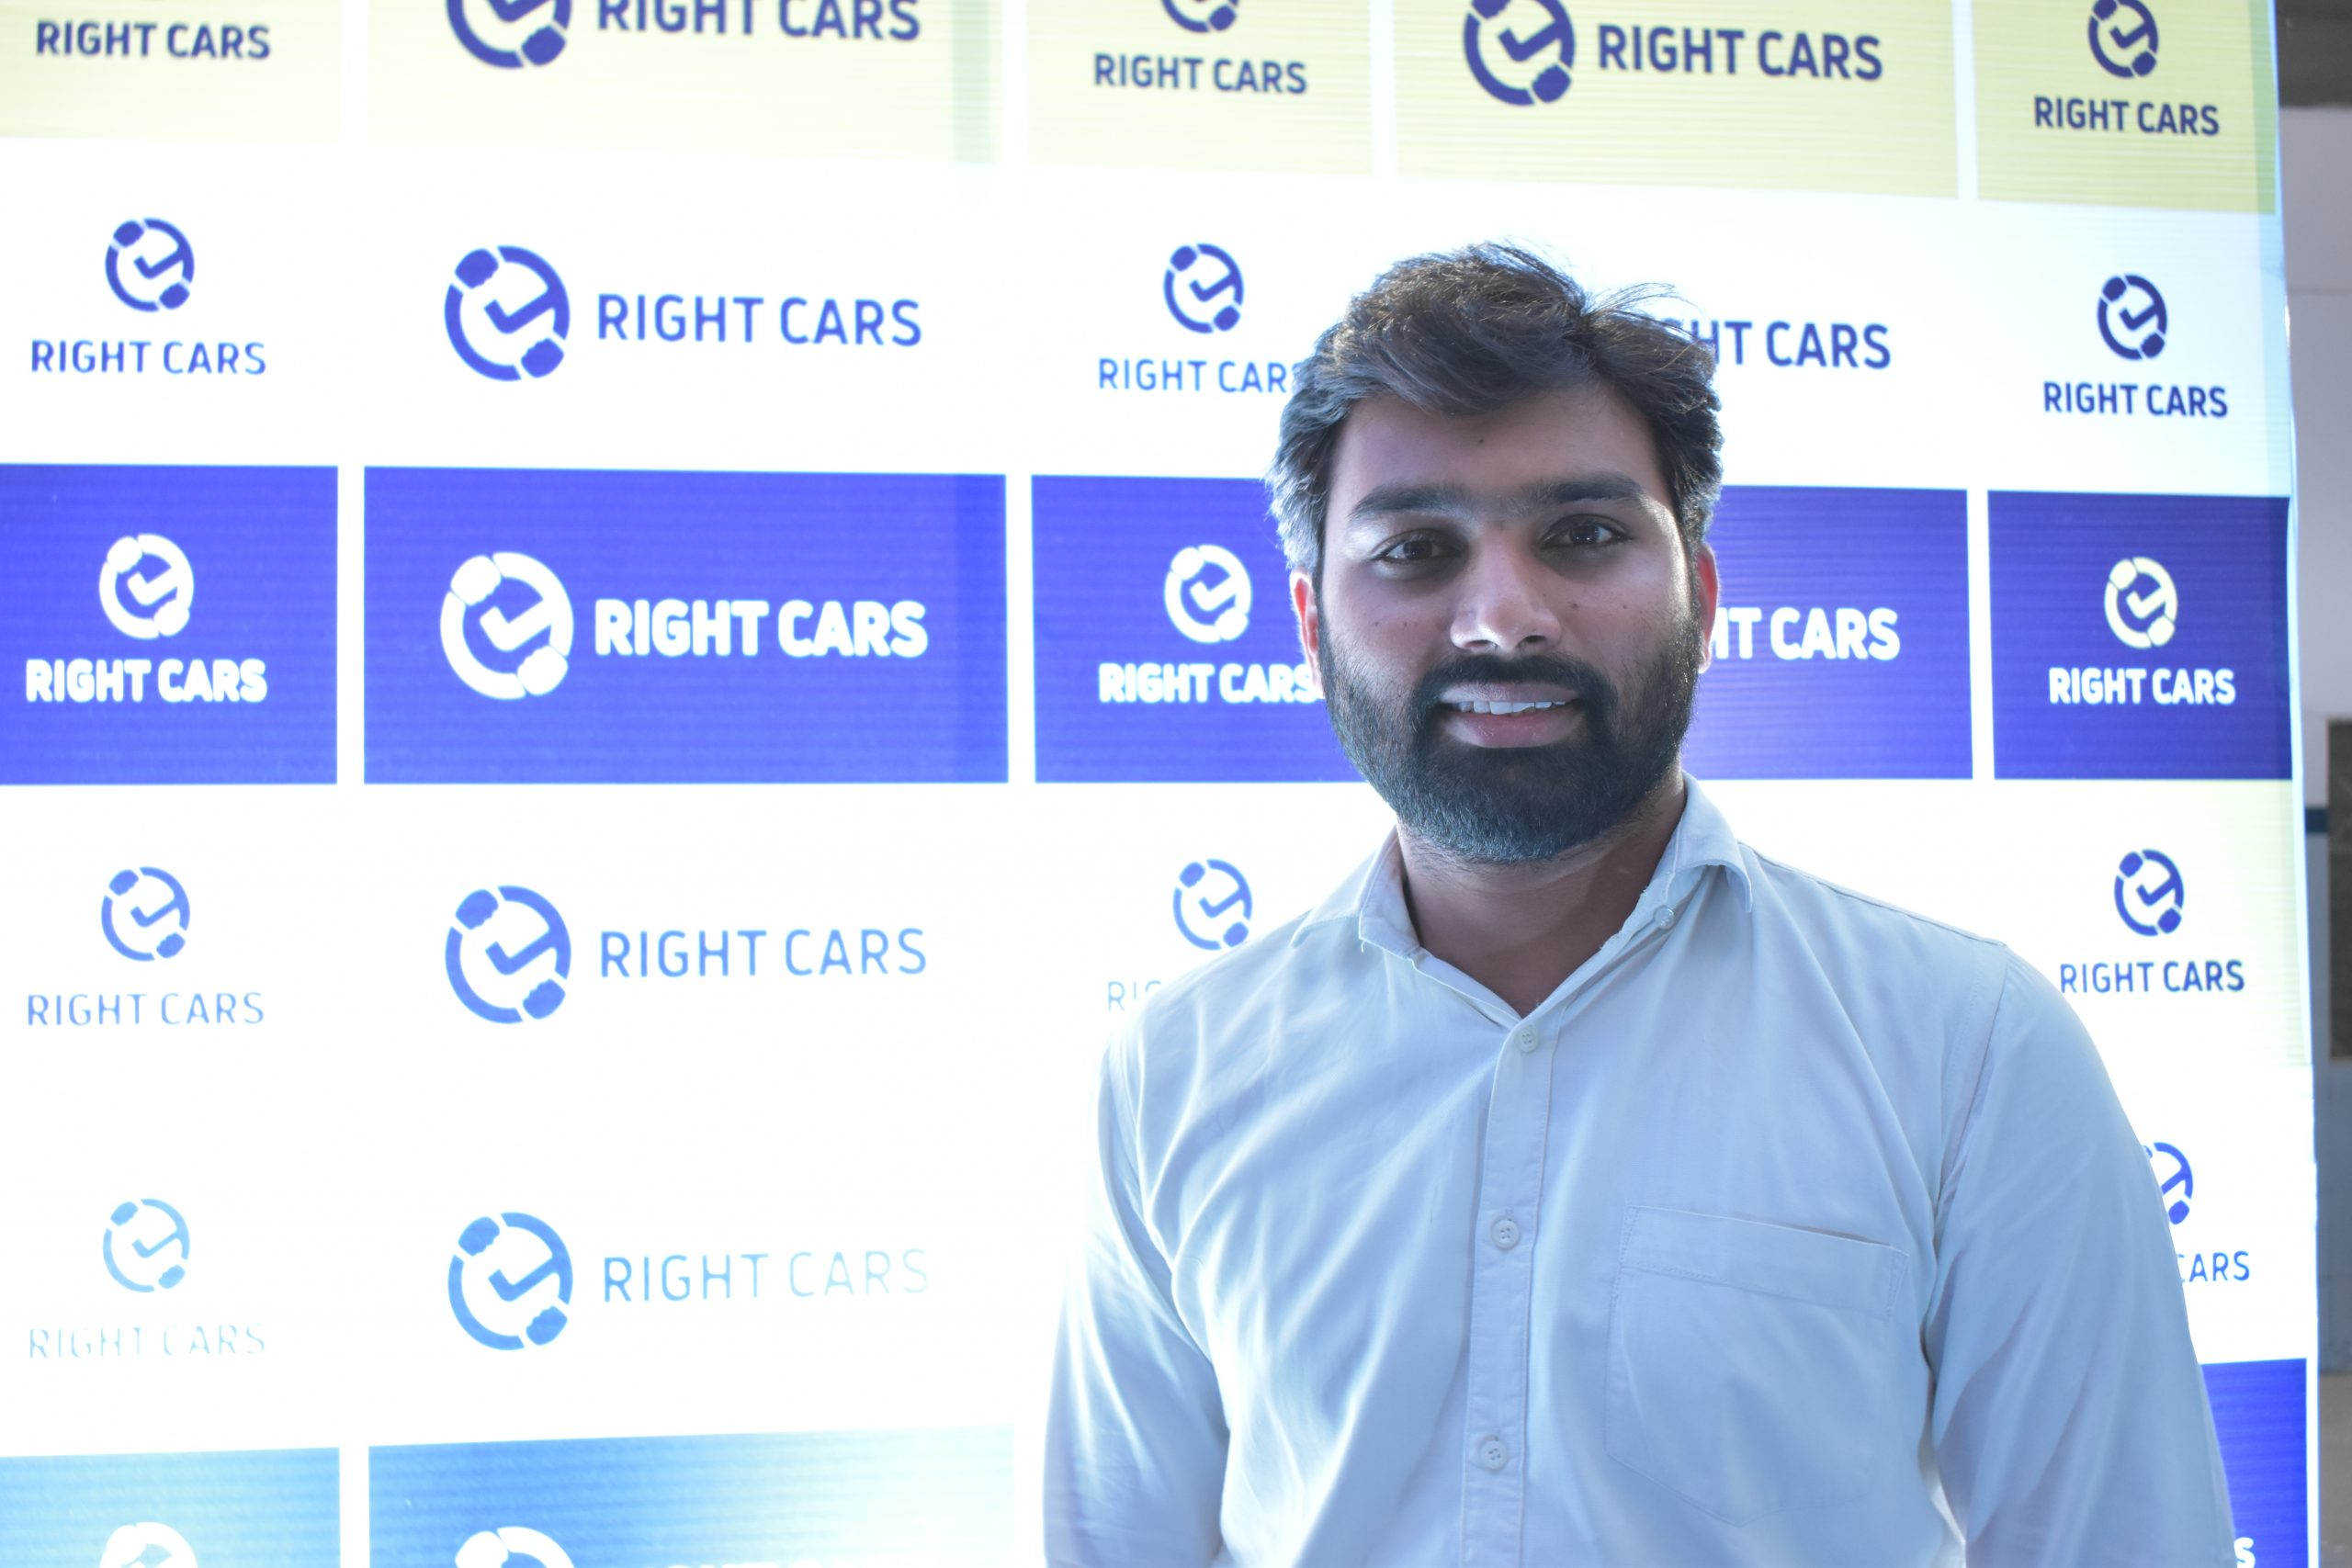 Mr. Manideep Chowdary, Managing Director, Right Cars.